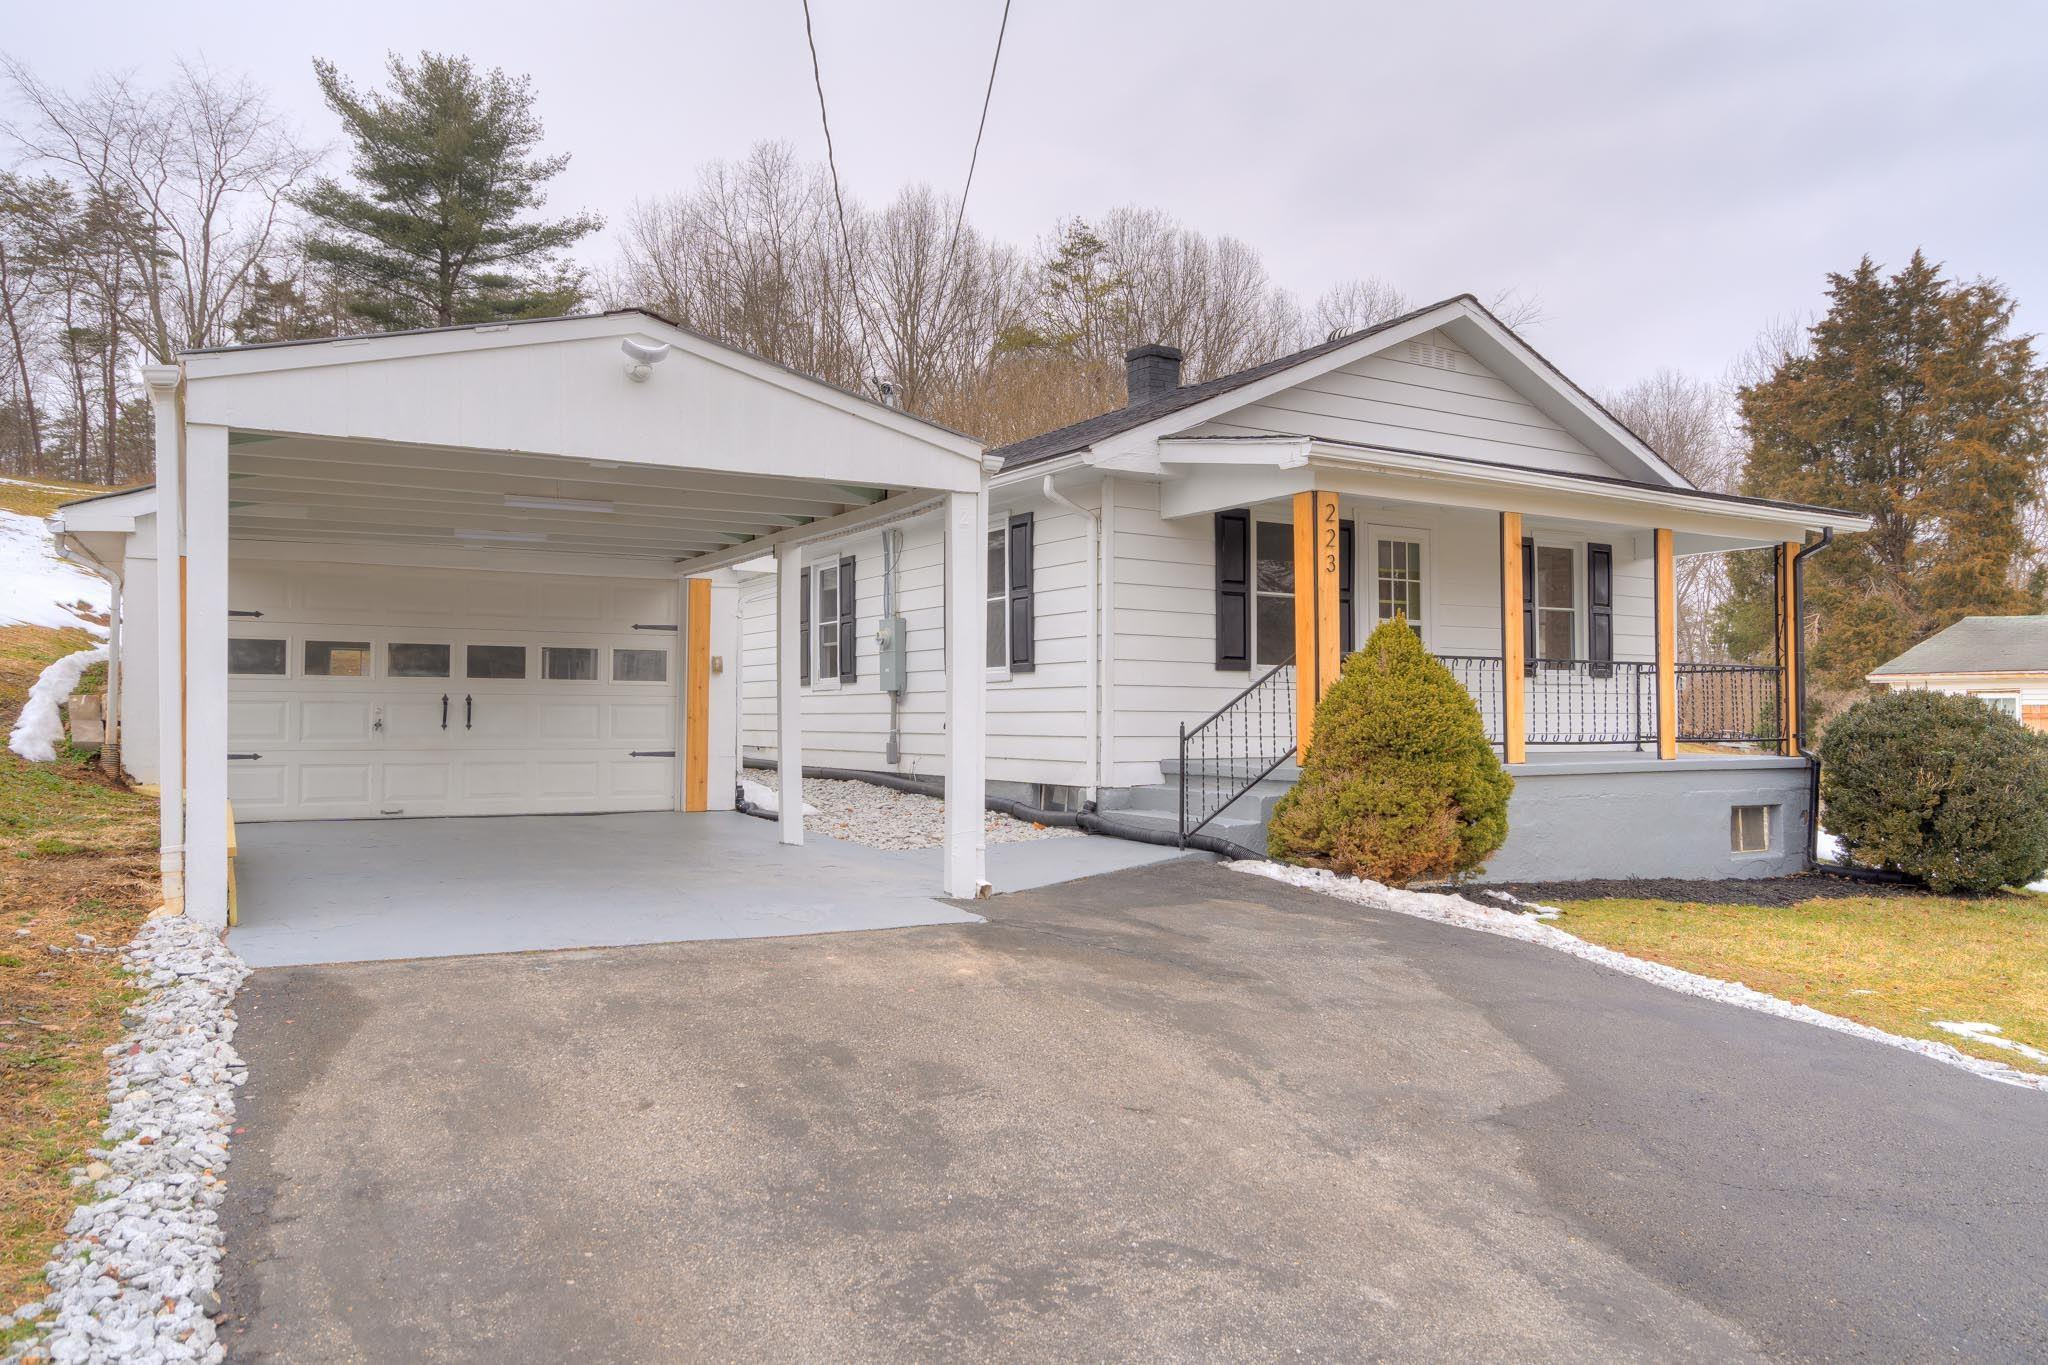 This completely redone bungalow is move in ready for you! Perfectly located, central to Radford, Christiansburg, and Blacksburg! ALL NEW: vinyl plank floors throughout, paint, windows, kitchen appliances, laundry wash tub, HVAC, well pump, sump pump, water heater and softener, plumbing, electrical panels, garage roof, landscaping! Enter via the large covered front porch, perfect for summer evenings! Spacious living room flows into the cozy dining room w/ custom fixtures! Completely renovated kitchen: new cabs, stainless appliances. Large pantry with rolling barn door, a gorgeous custom touch! Mudroom/laundry room off the kitchen walks out to covered back porch. 3 bright bedrooms; carpet in the master, 2 closets have new interiors! Large windows- so much light in this house!! Large carport and 1 car garage with a brand new roof. Country setting, but just minutes from local schools and all your shopping and restaurant needs.  This home won't last long- see today!